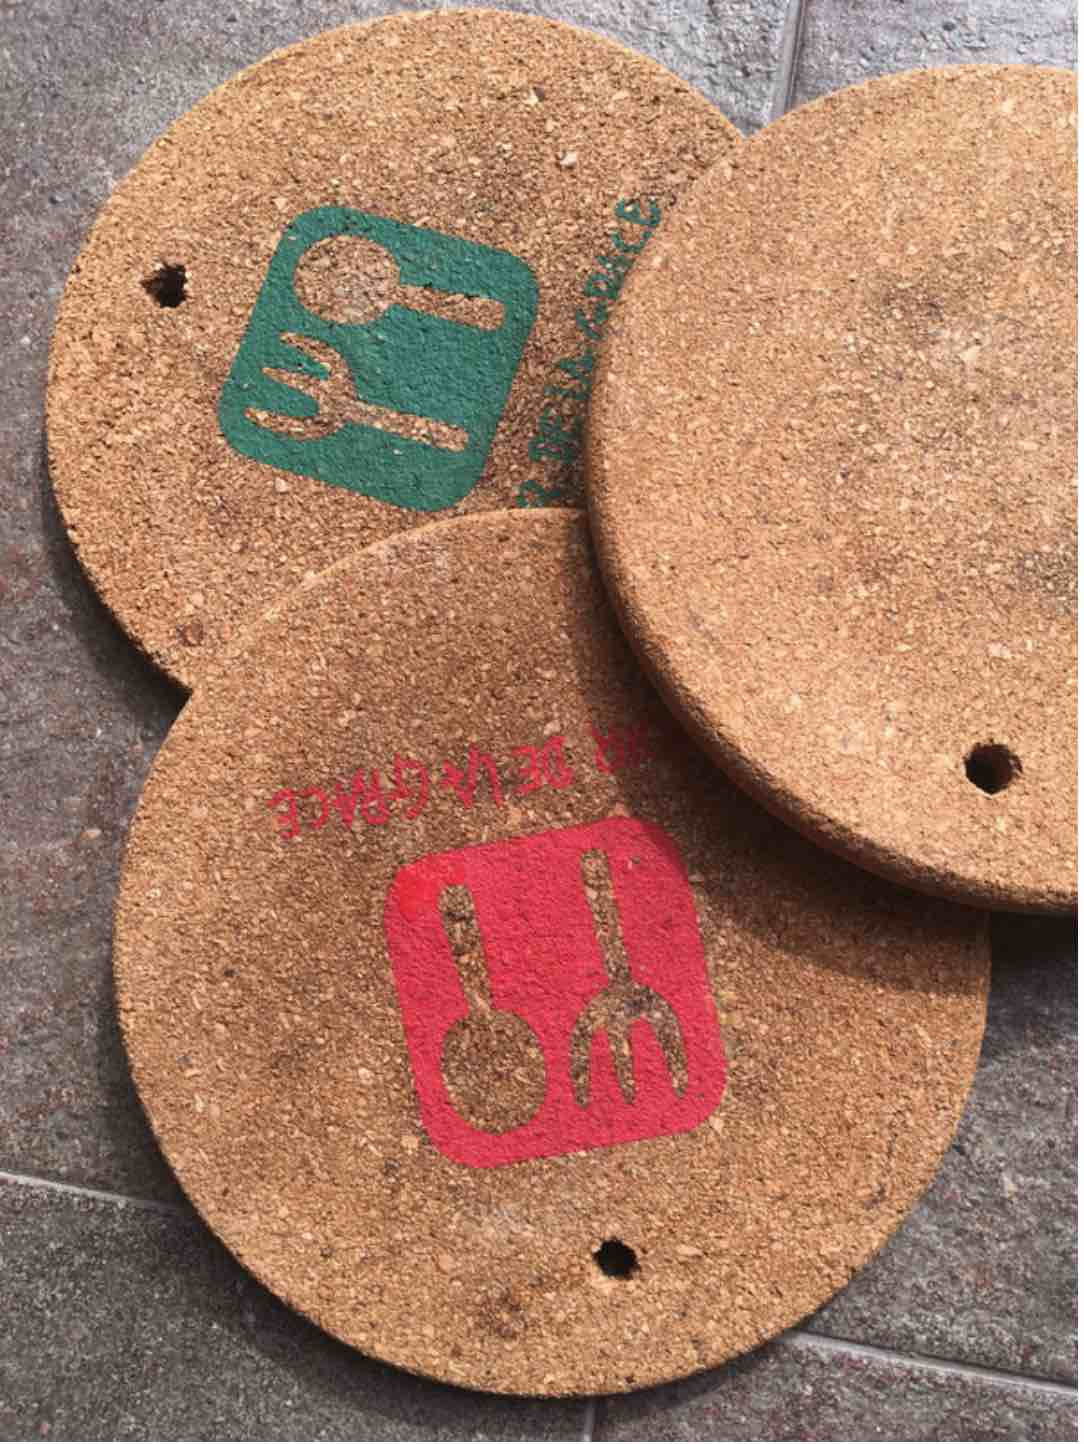 Kids crafts 3 cool ideas to upcycle old cork coasters for Cork coasters for crafts